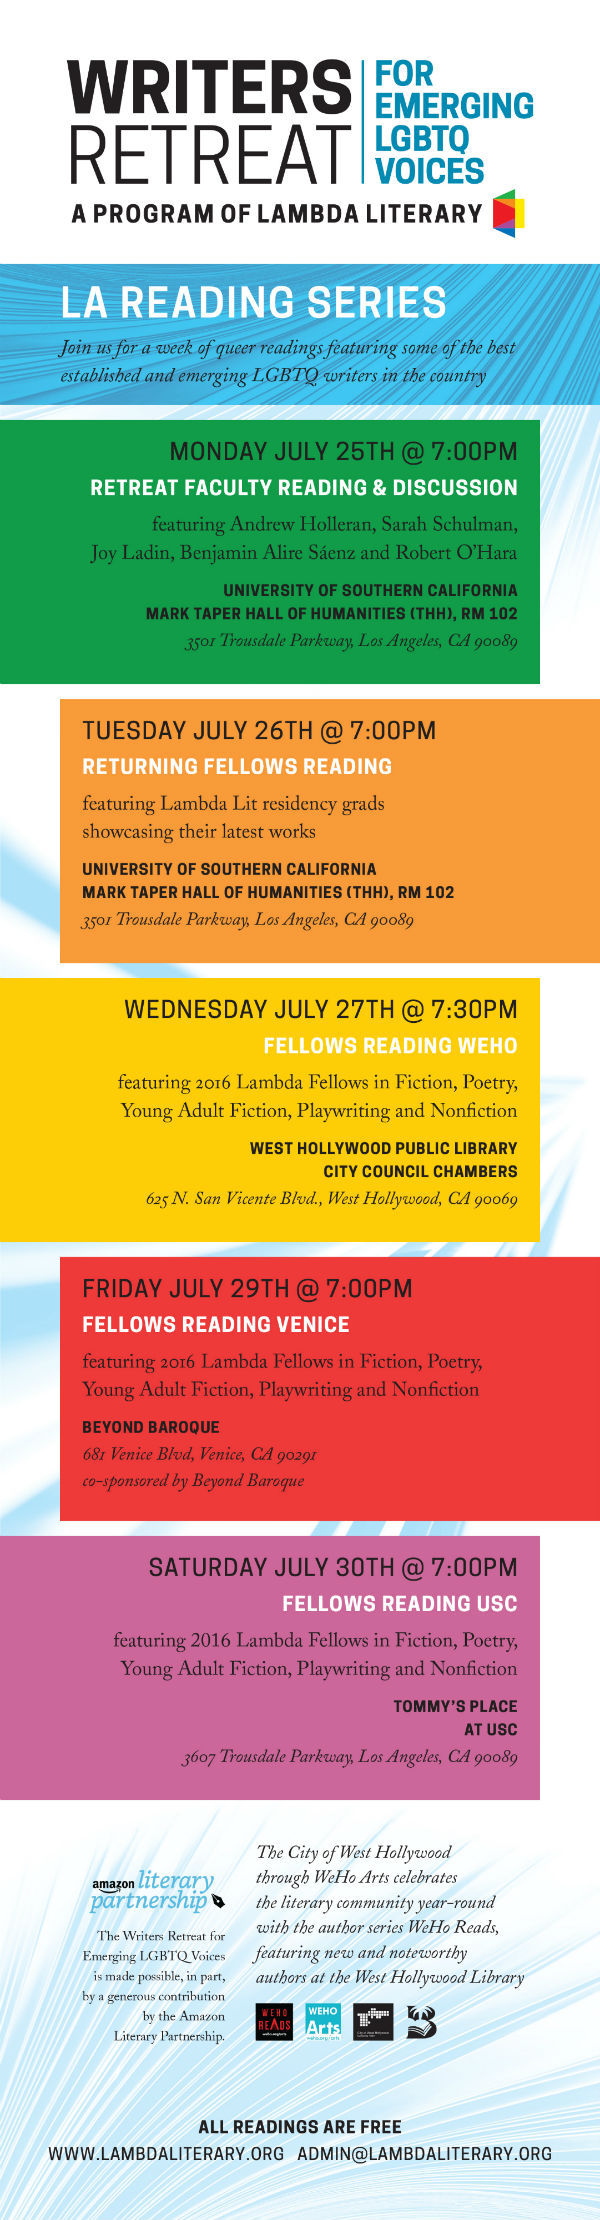 Lambda Literary LA Reading Series 2016 web